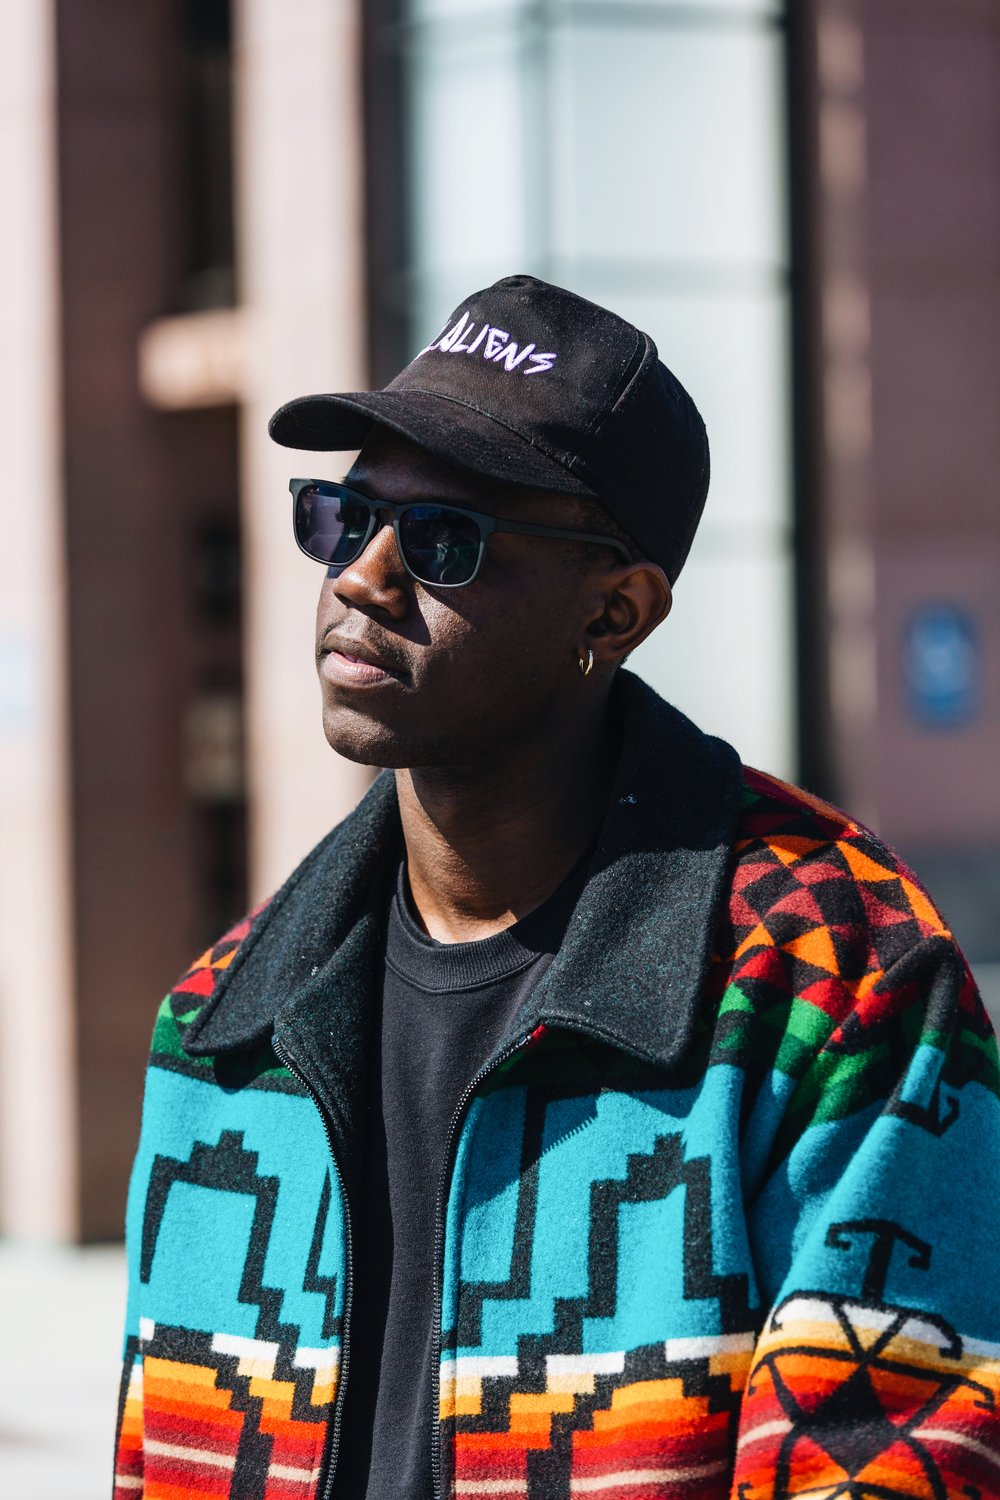 Image of DC creative 1takeace wearing black hat with white words, black sweatshirt, black sunglasses, and multicolored patterned jacket captured by photographer The Creative Gentleman during Walk with Locals two year anniversary walk.